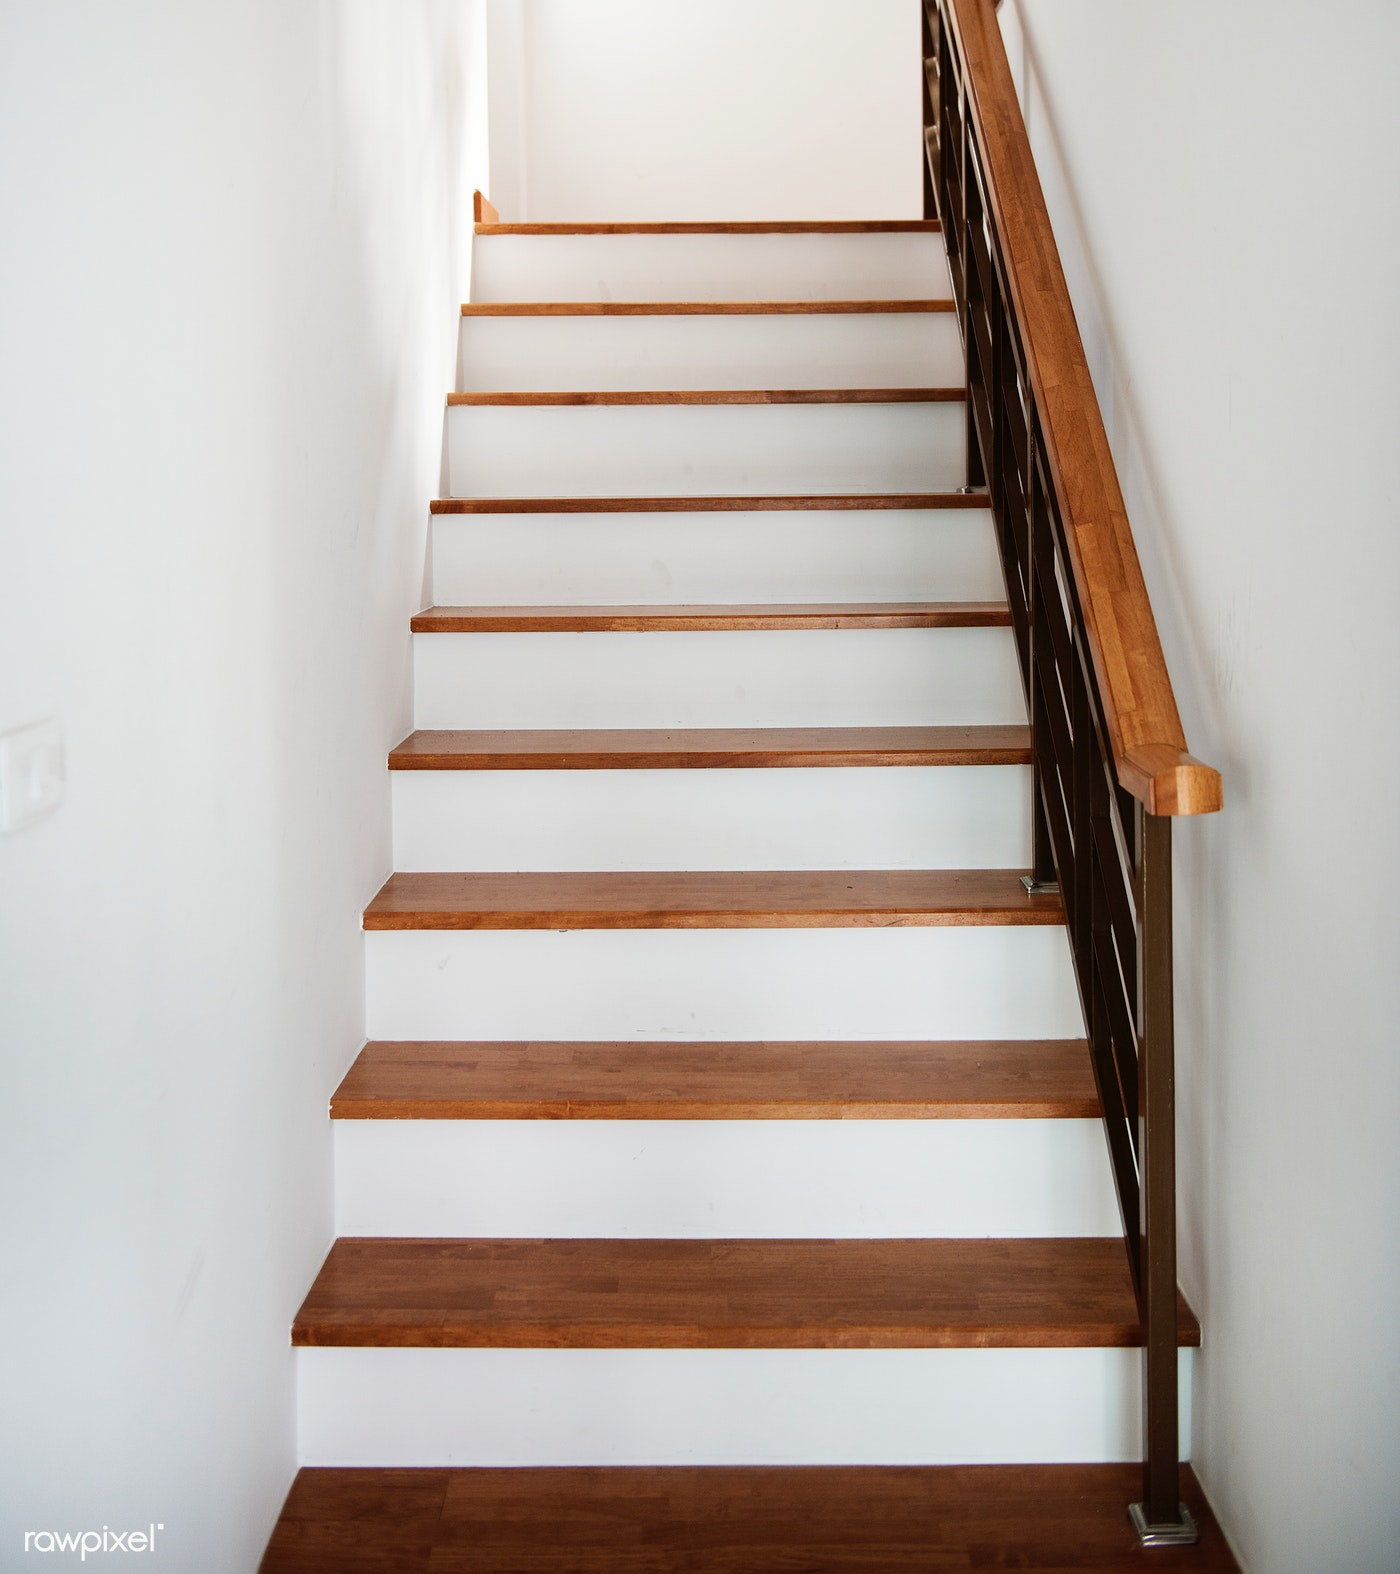 Staircase on white background